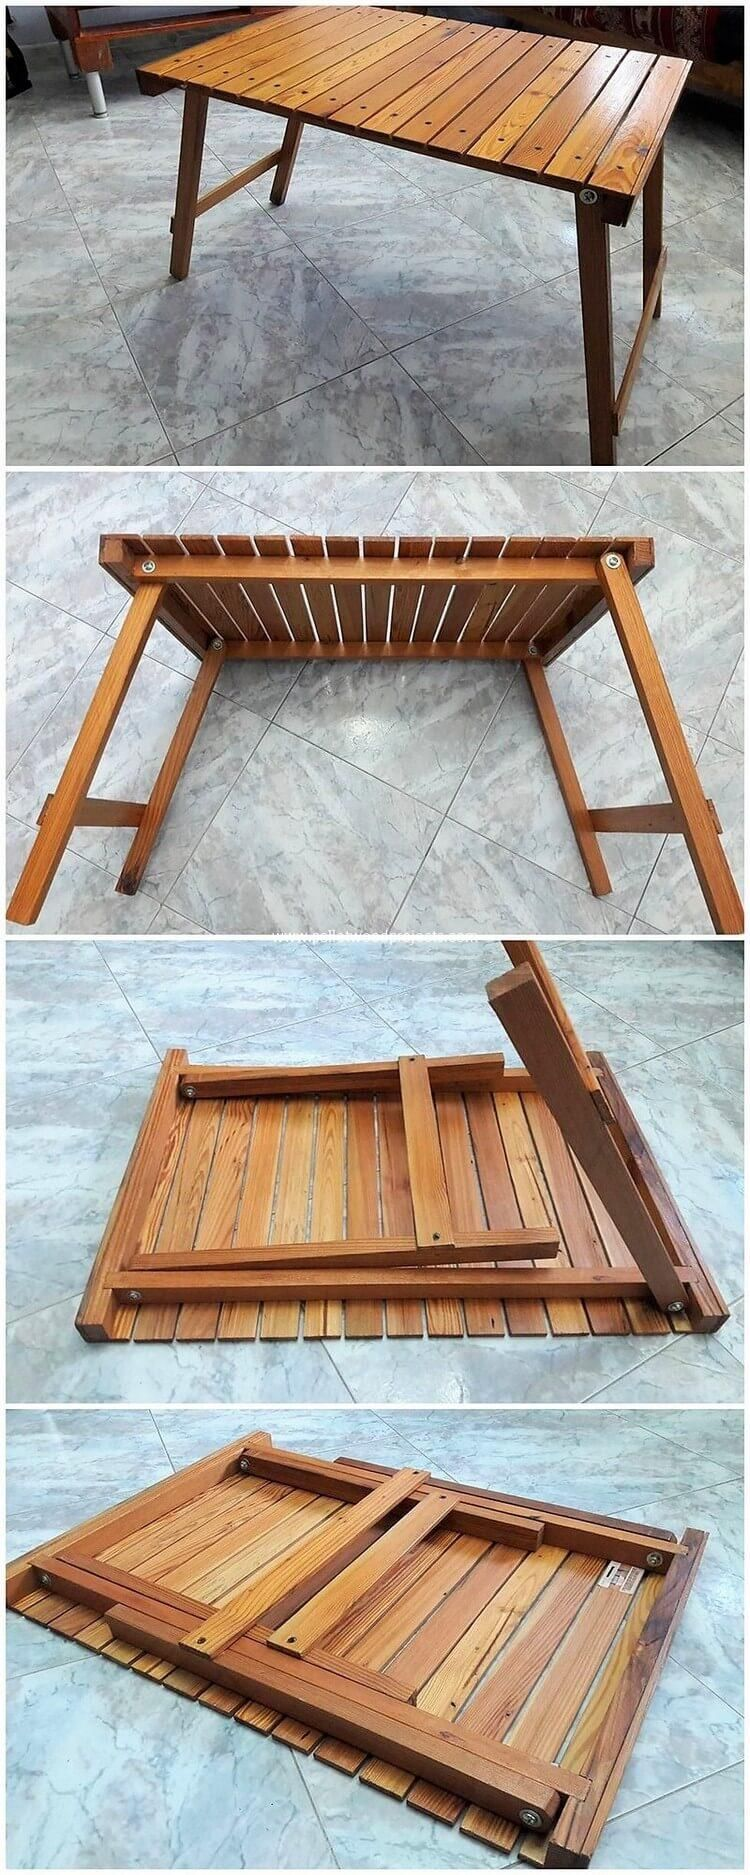 Exciting Ways To Make Useful Things With Old Wooden